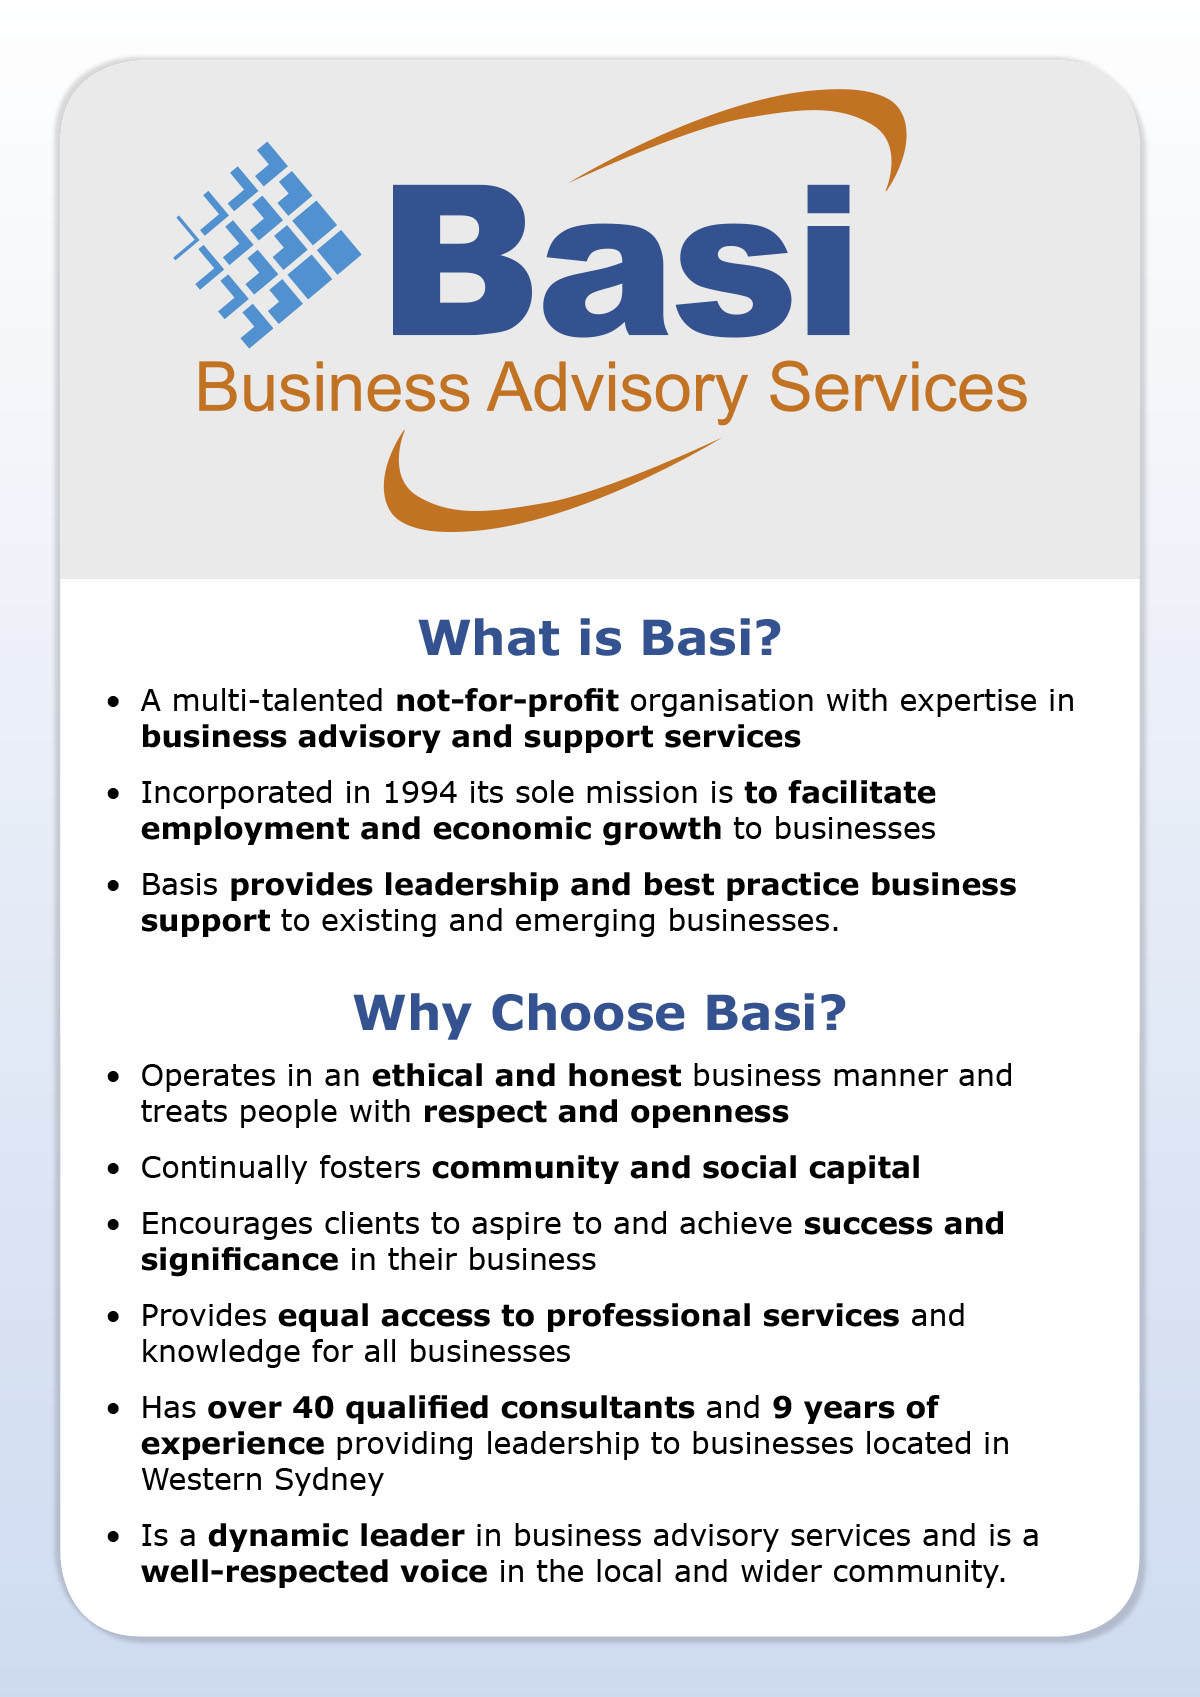 basi-business-services-blacktown-graphic-design-02